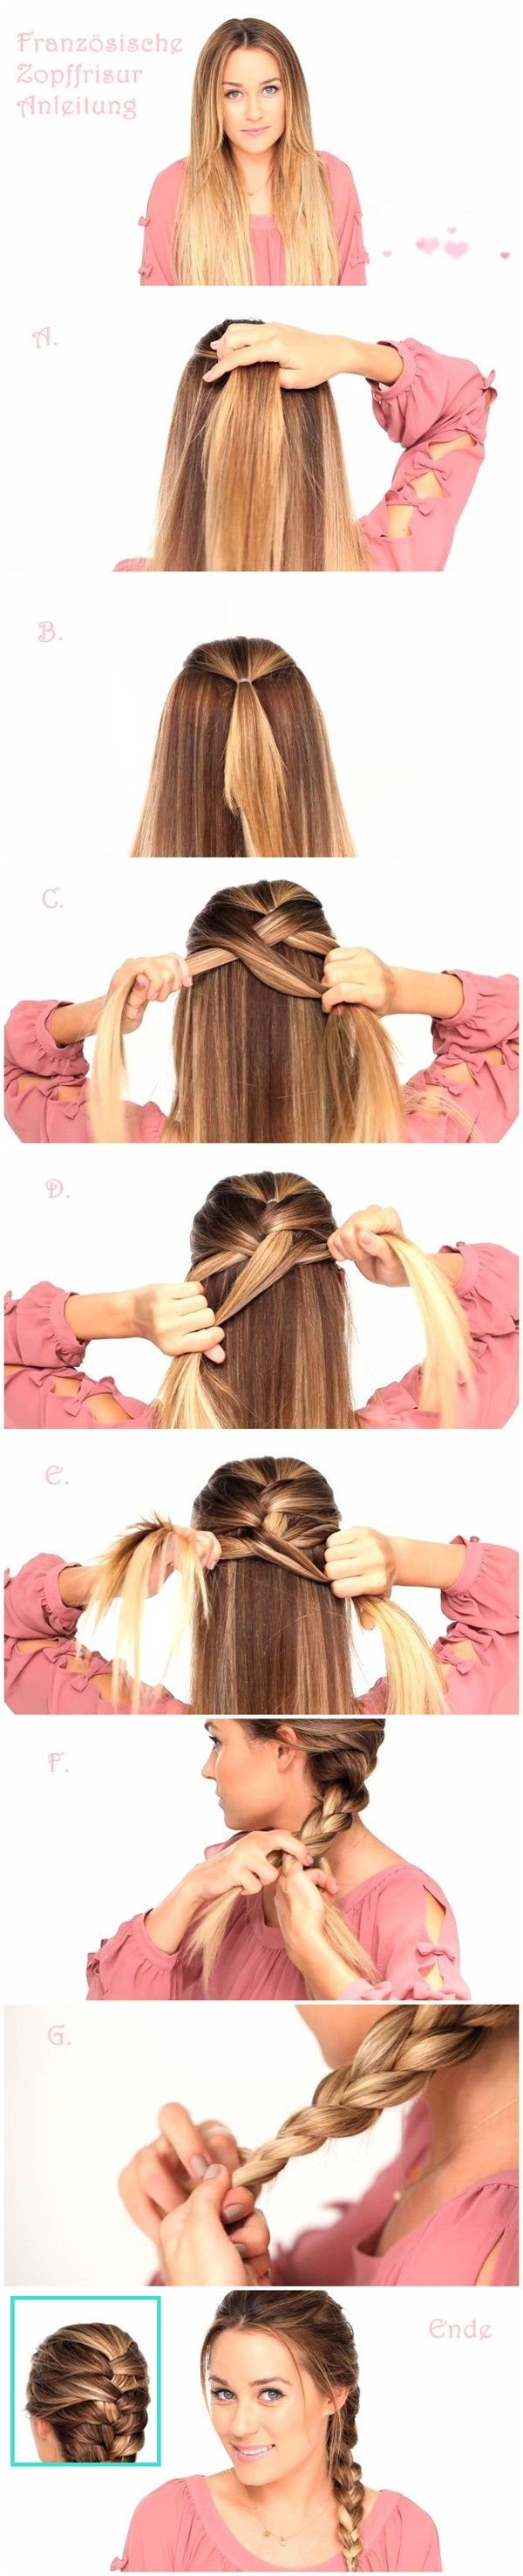 French Braids Hairstyles Tutorials Everyday Hair Styles - Classic hairstyle tutorials